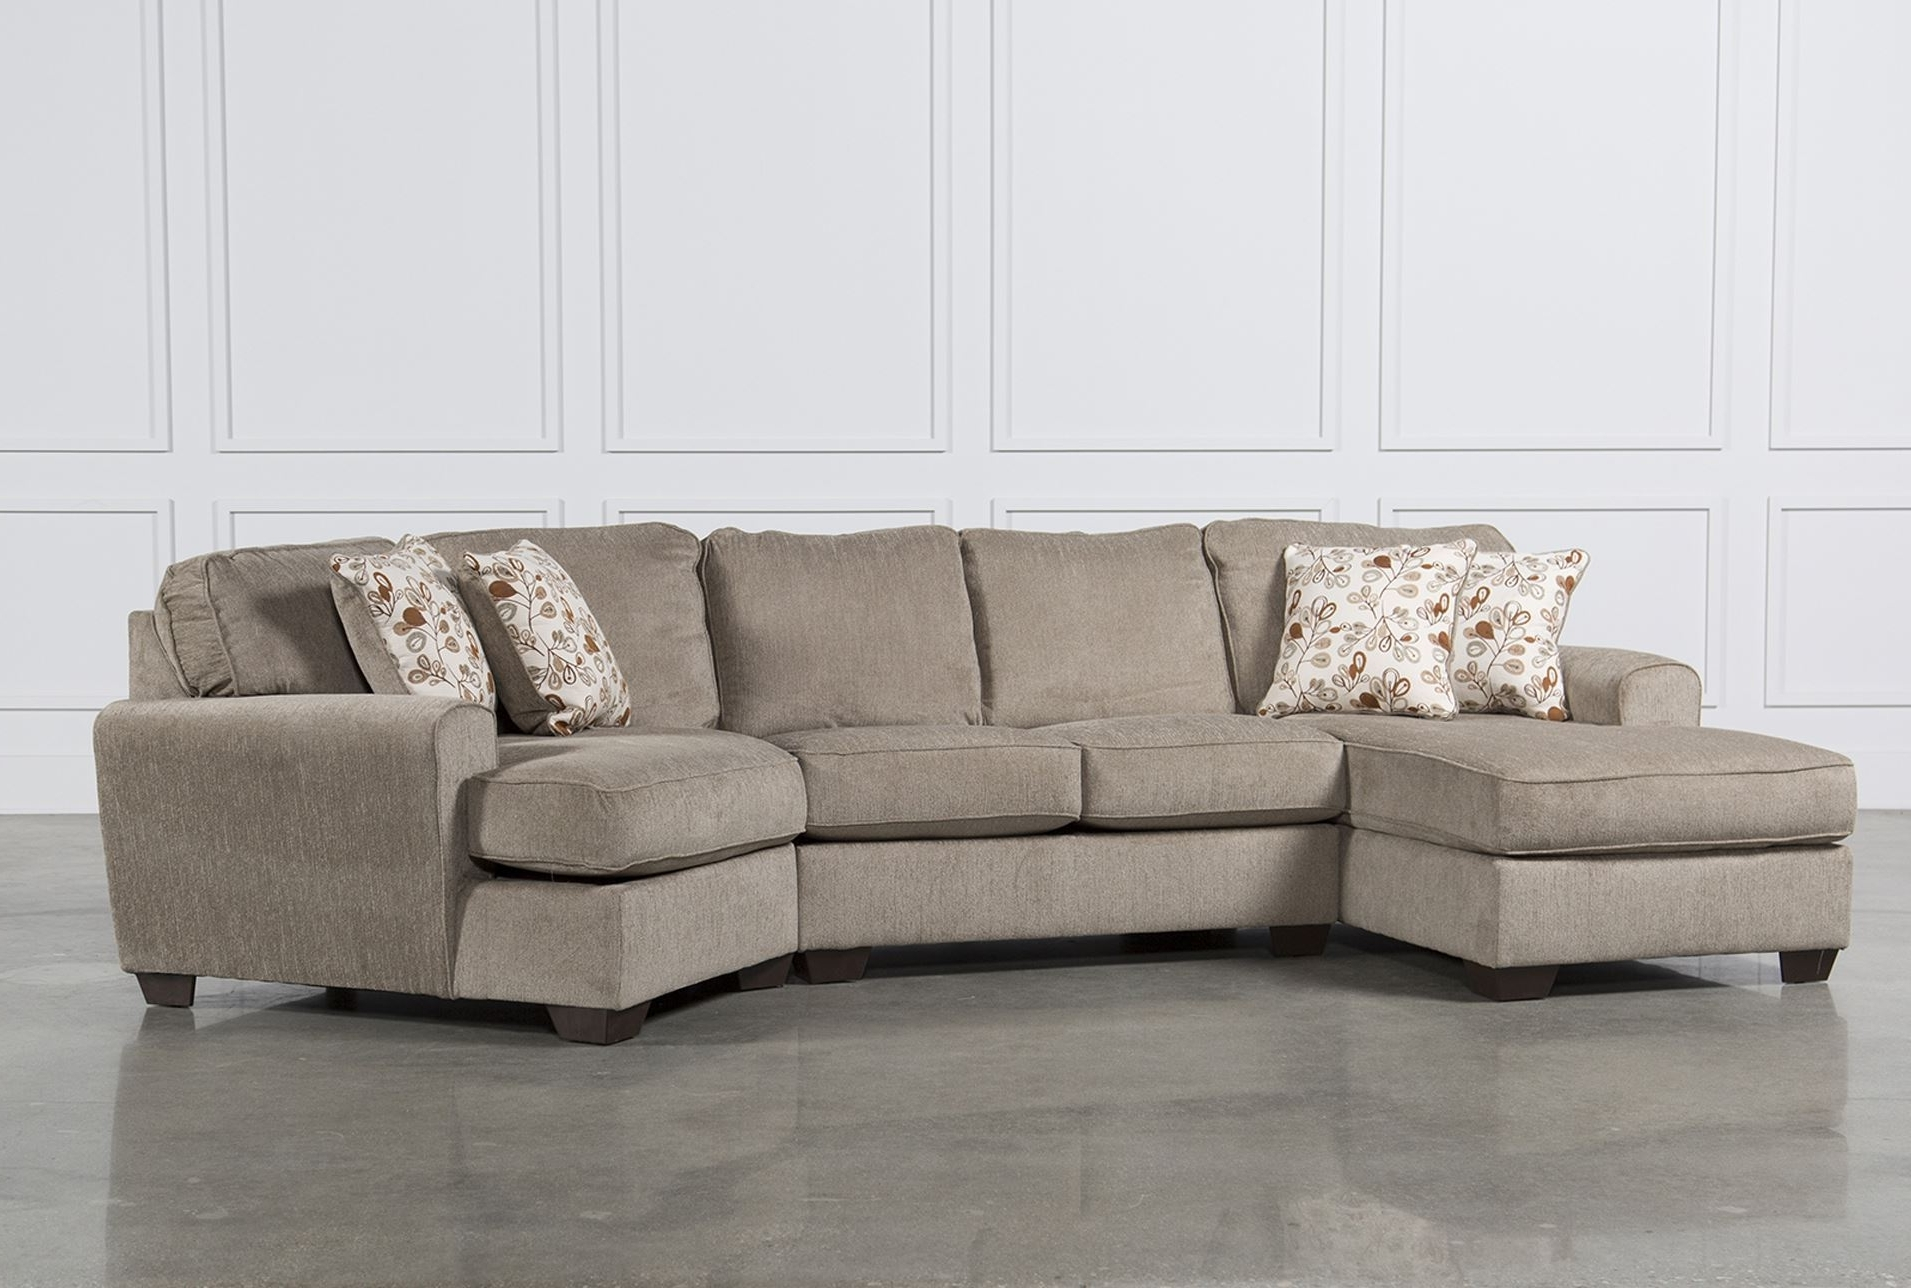 functional space furniture sofa and sleeper chairs small used modern for sofas sectional fabric sleepers sofabeds bed grey